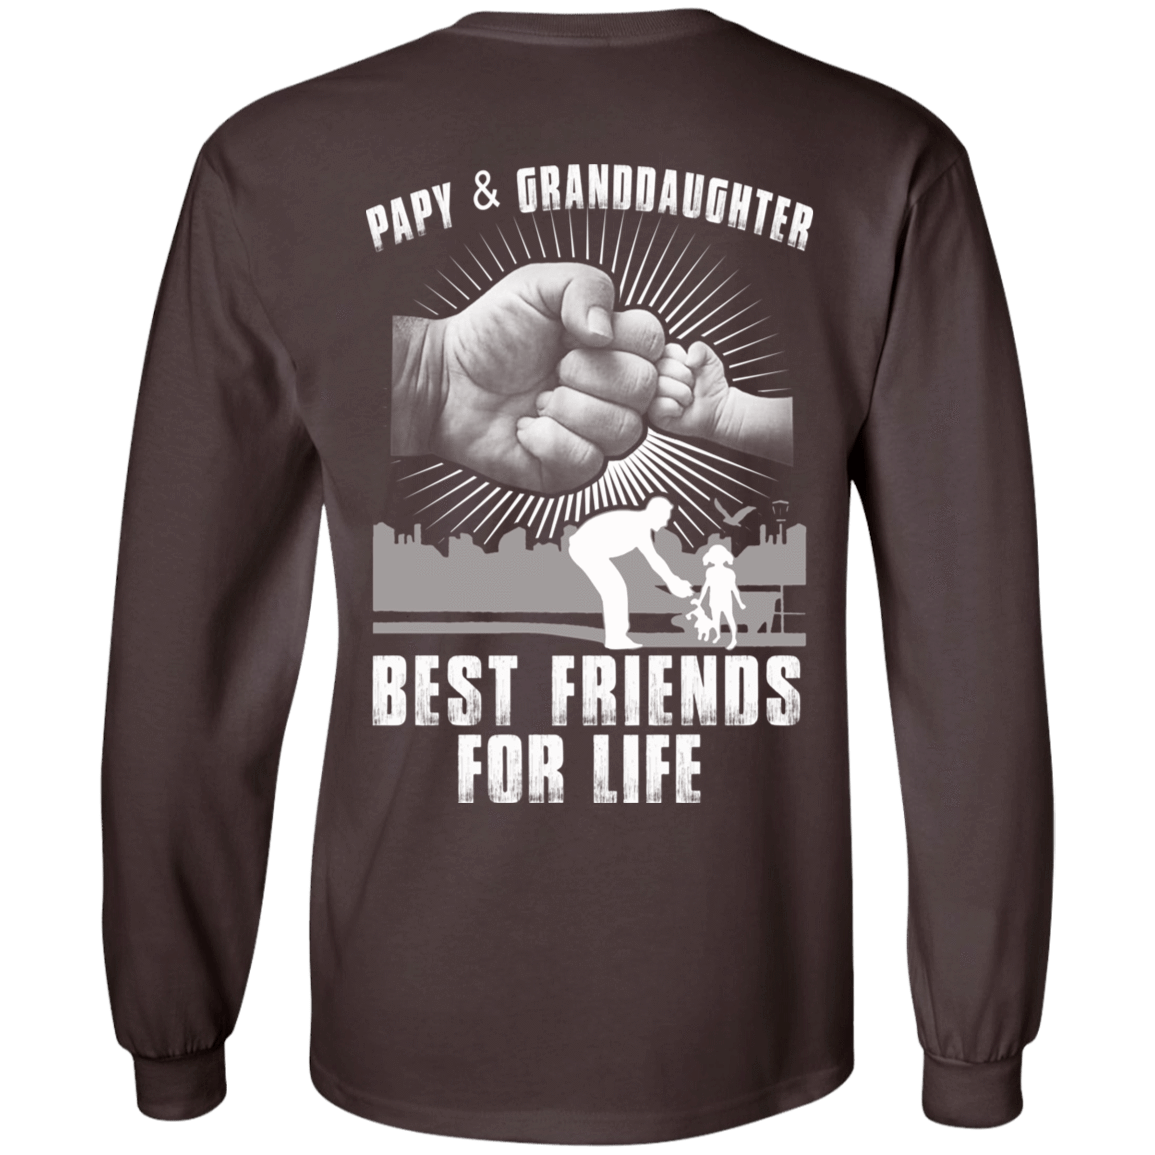 Papy And Granddaughter Best Friends For Life 30-2107-71996228-10724 - Tee Ript